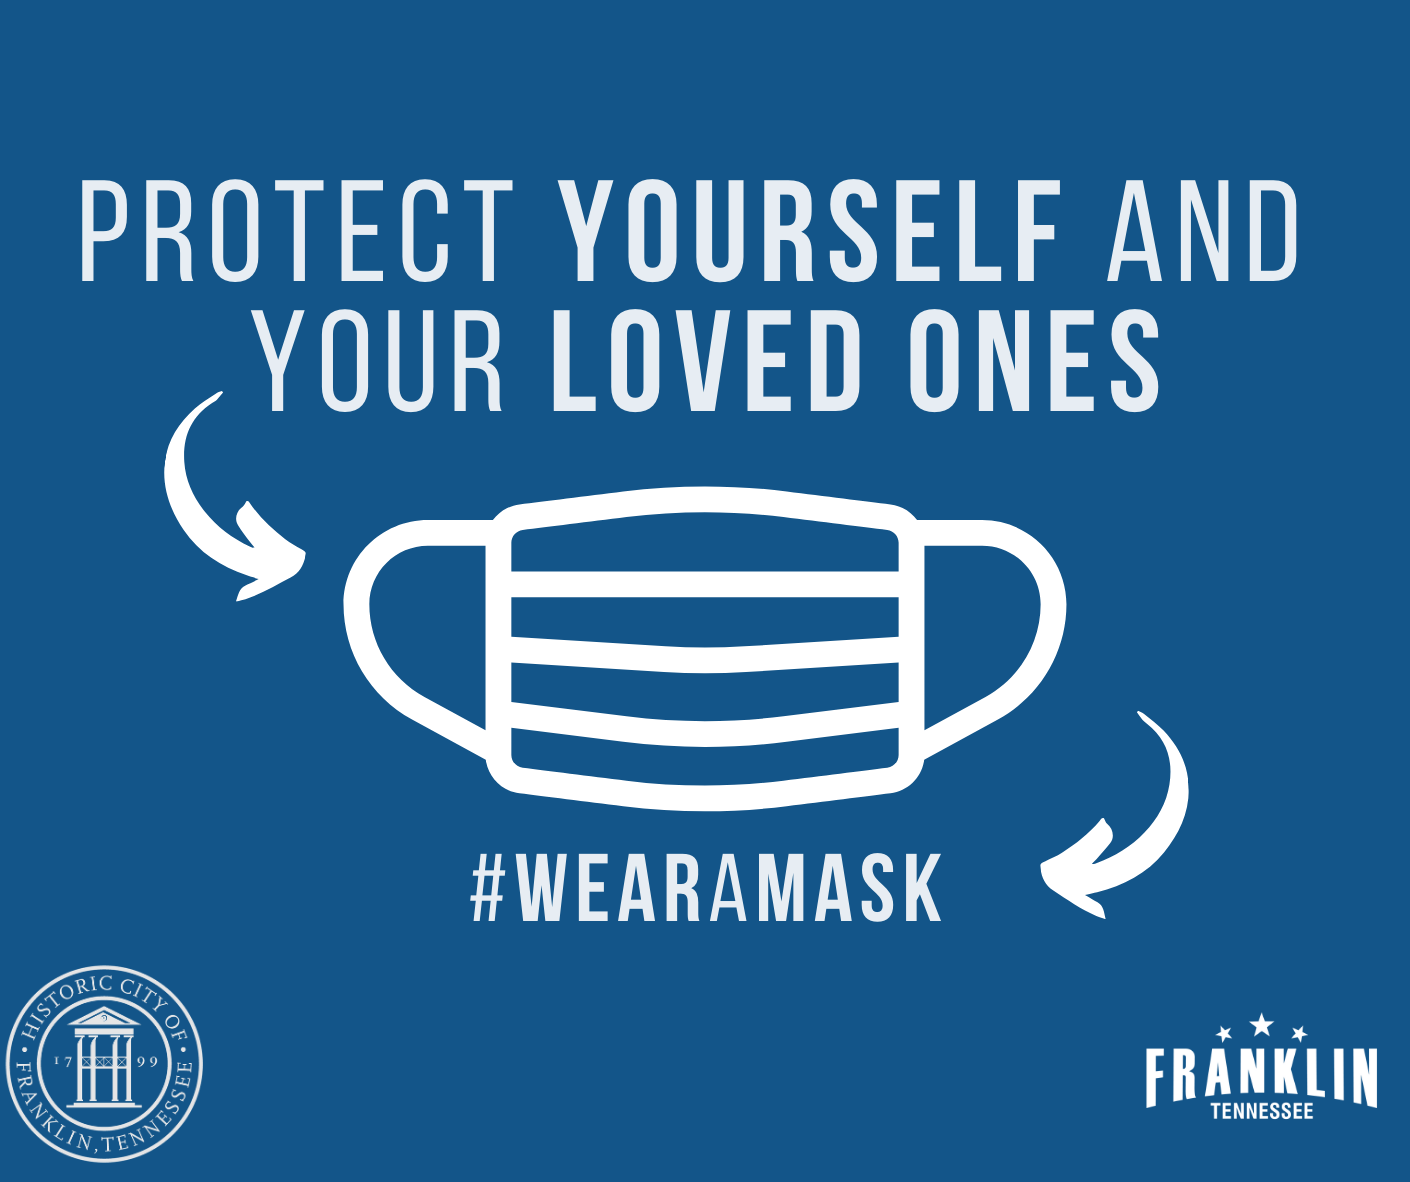 City Leaders, Community Organizations, And Essential Workers Encourage All To Wear Masks